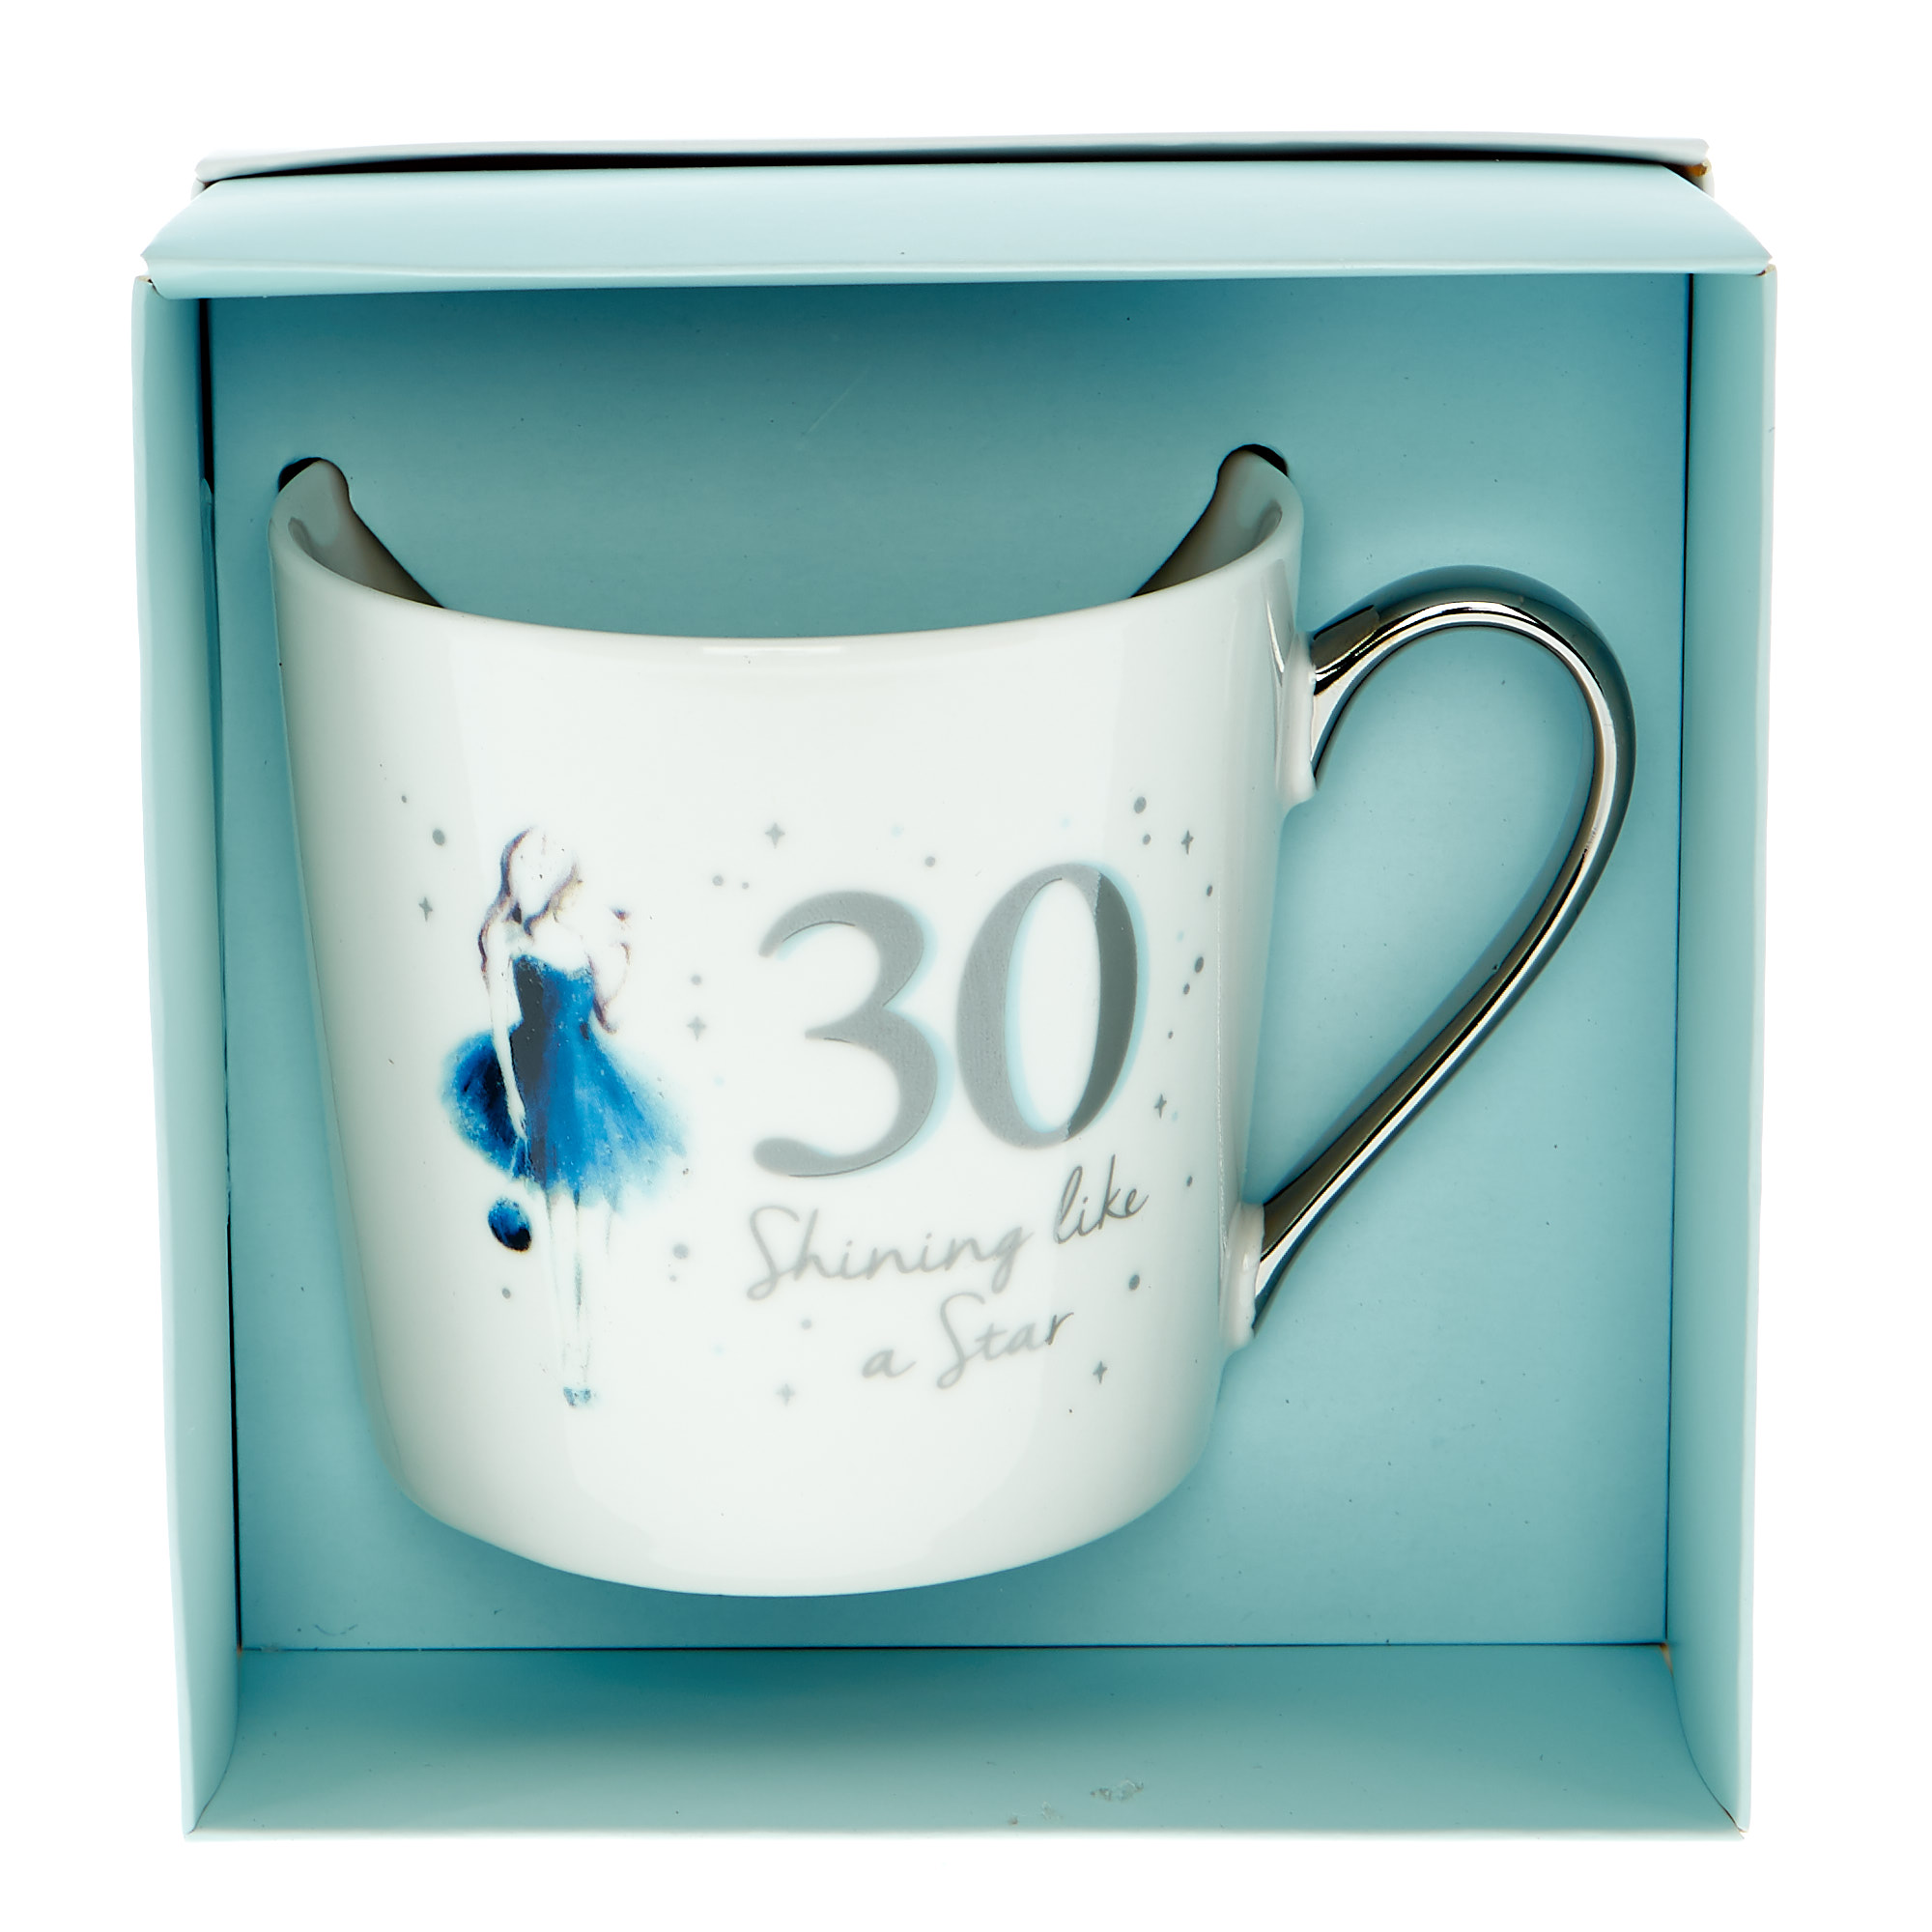 30th Birthday Mug In A Box - Shining Like A Star